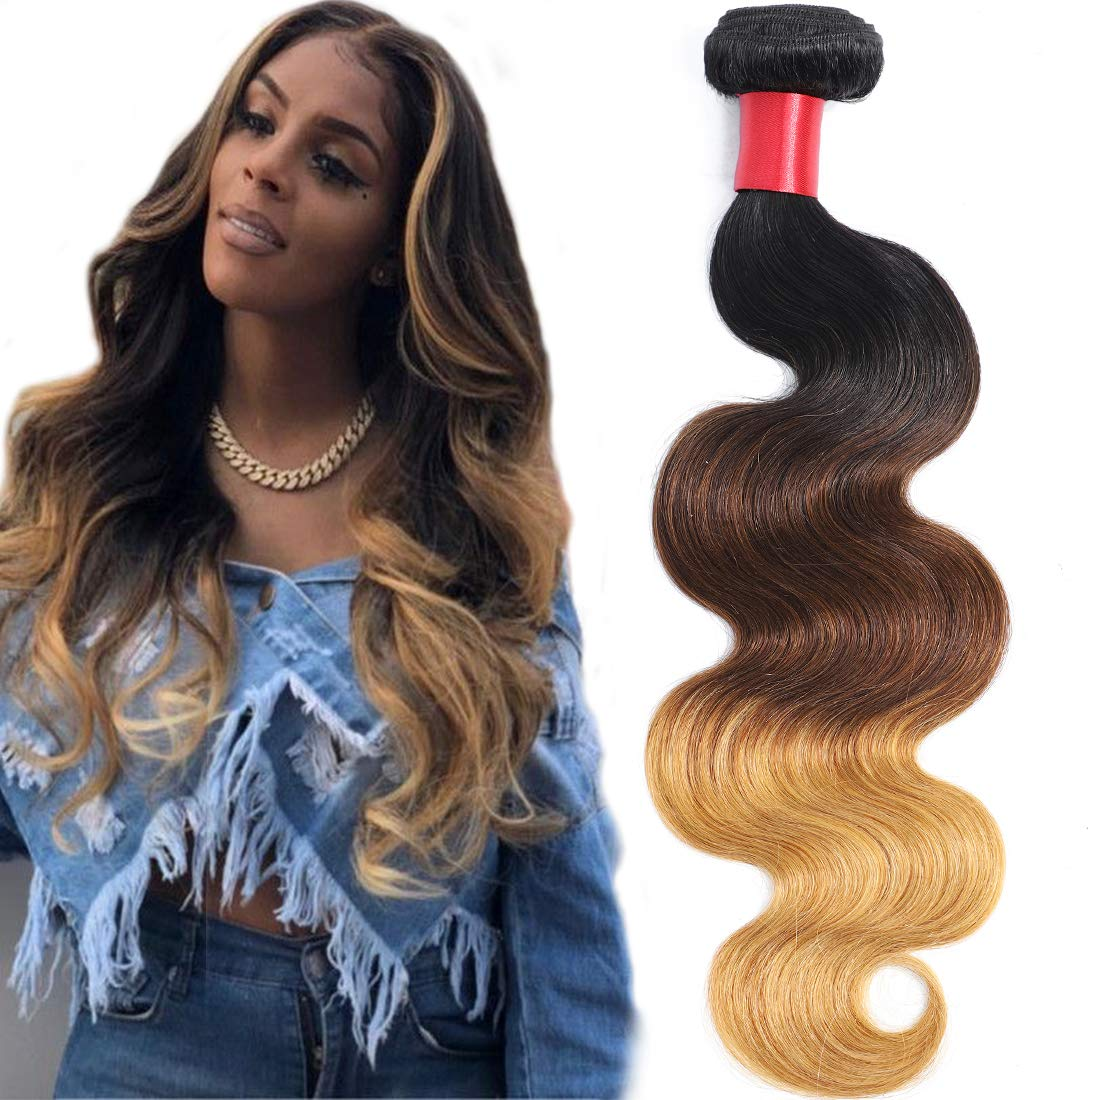 AUTTO Hair Brazilian Virgin Ombre New Shipping Free Body Bundle 100% quality warranty! 1B Wave 4 One